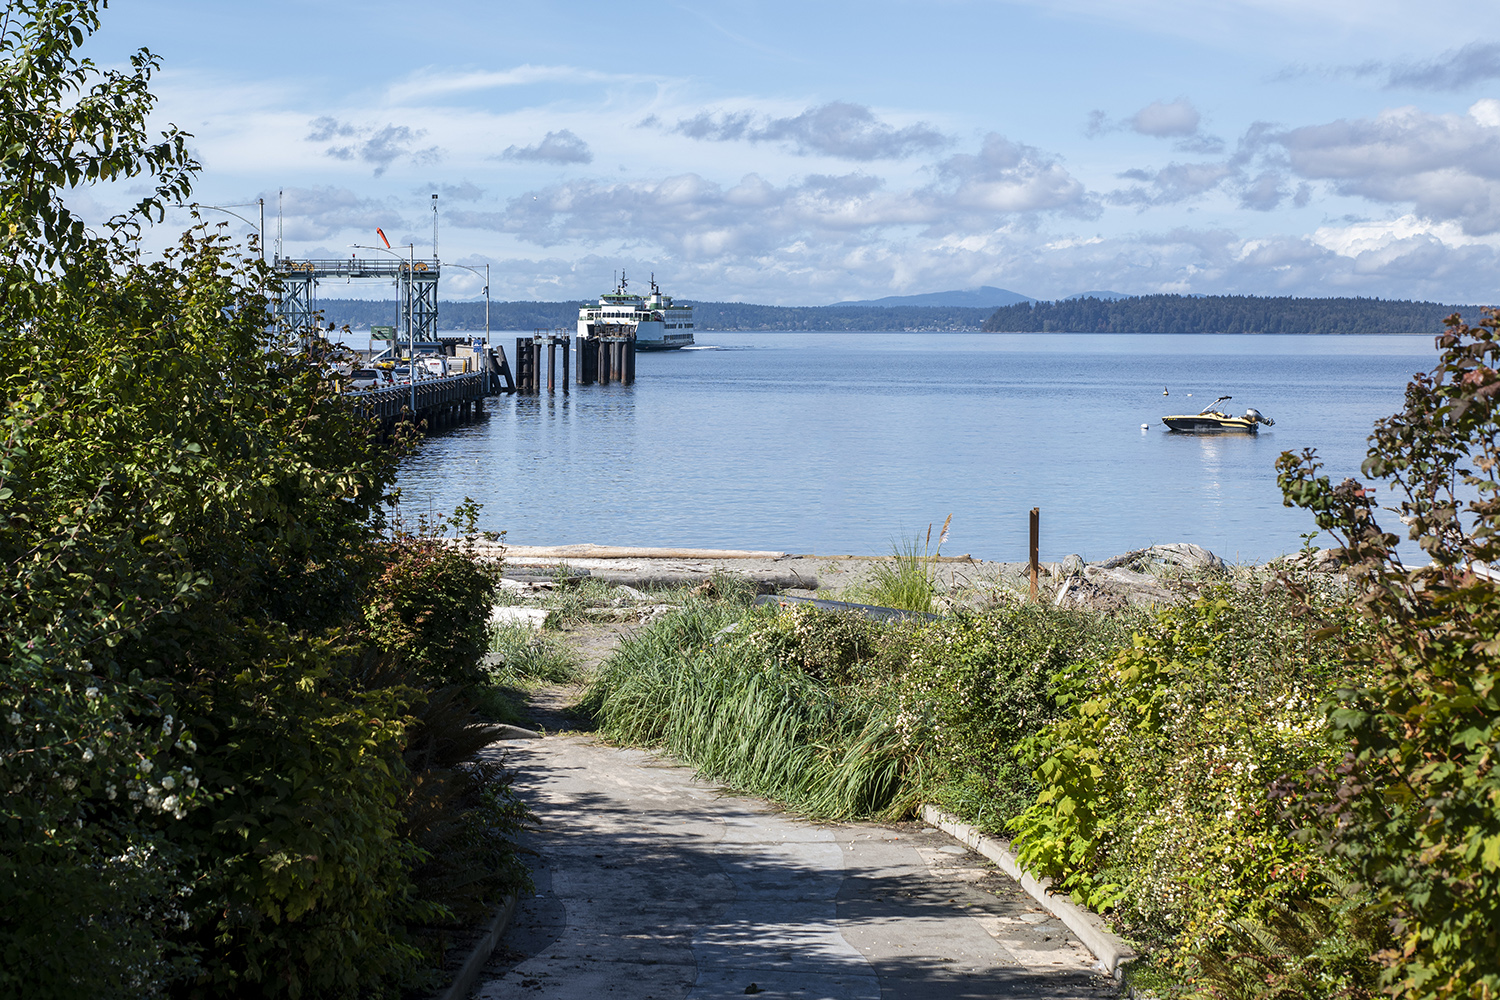 Craving a non-crowded beach break? This cute, little-known park is perfectly situated right beside the Fauntleroy Ferry Dock. Stroll down the paved path to the sandy waterfront beach and enjoy views of the Puget Sound, Vashon Island and floating ferries.{ }(Image: Rachael Jones / Seattle Refined)